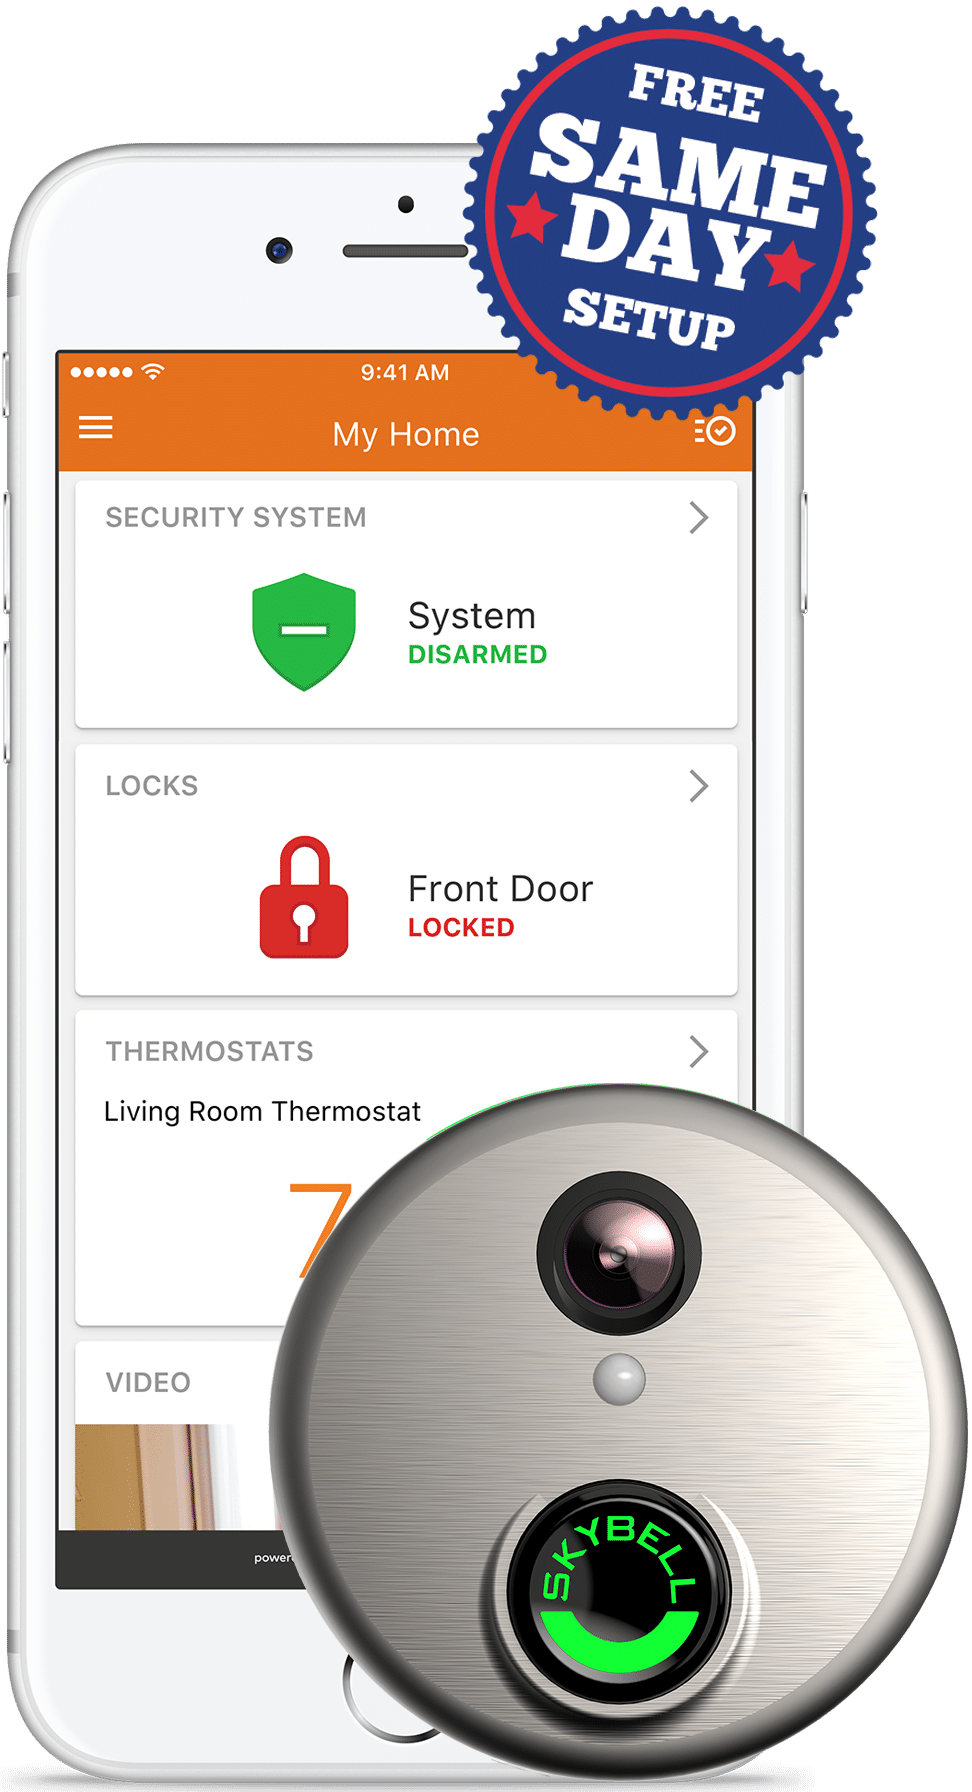 Same Day Installation of Connected Home Security